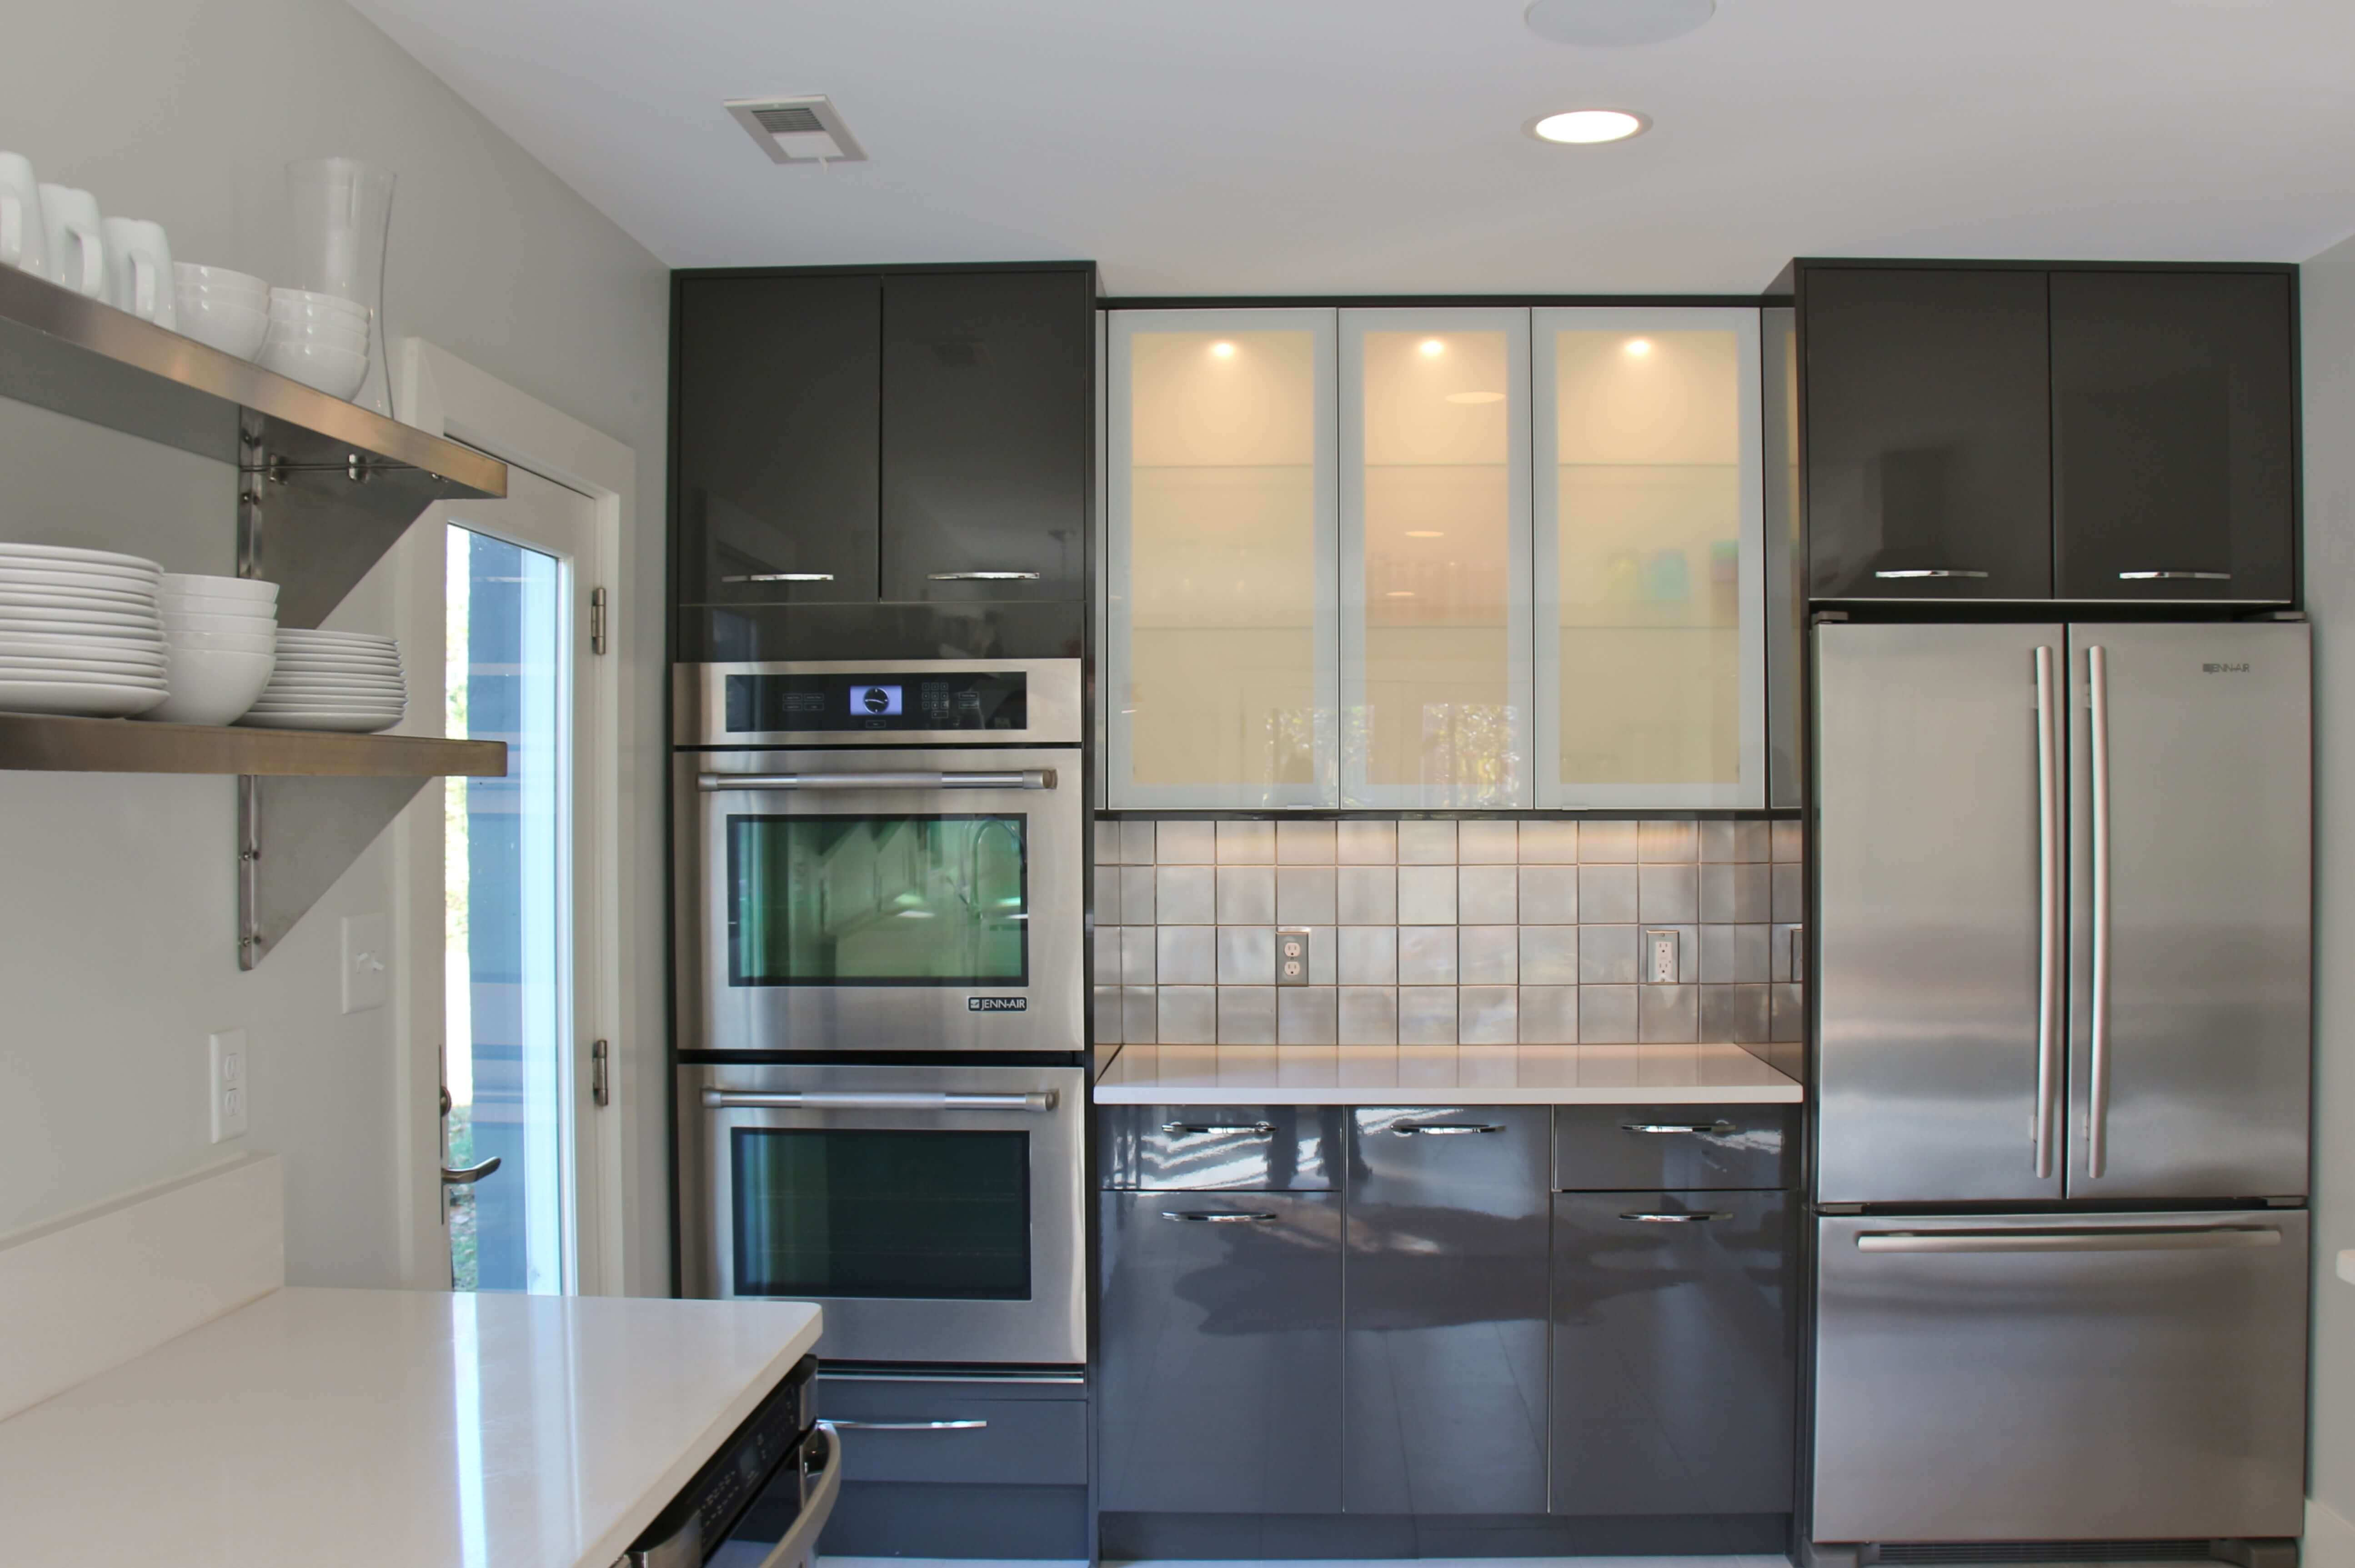 ikea kitchen contractors kitchen remodeling maryland virginia dc. Black Bedroom Furniture Sets. Home Design Ideas